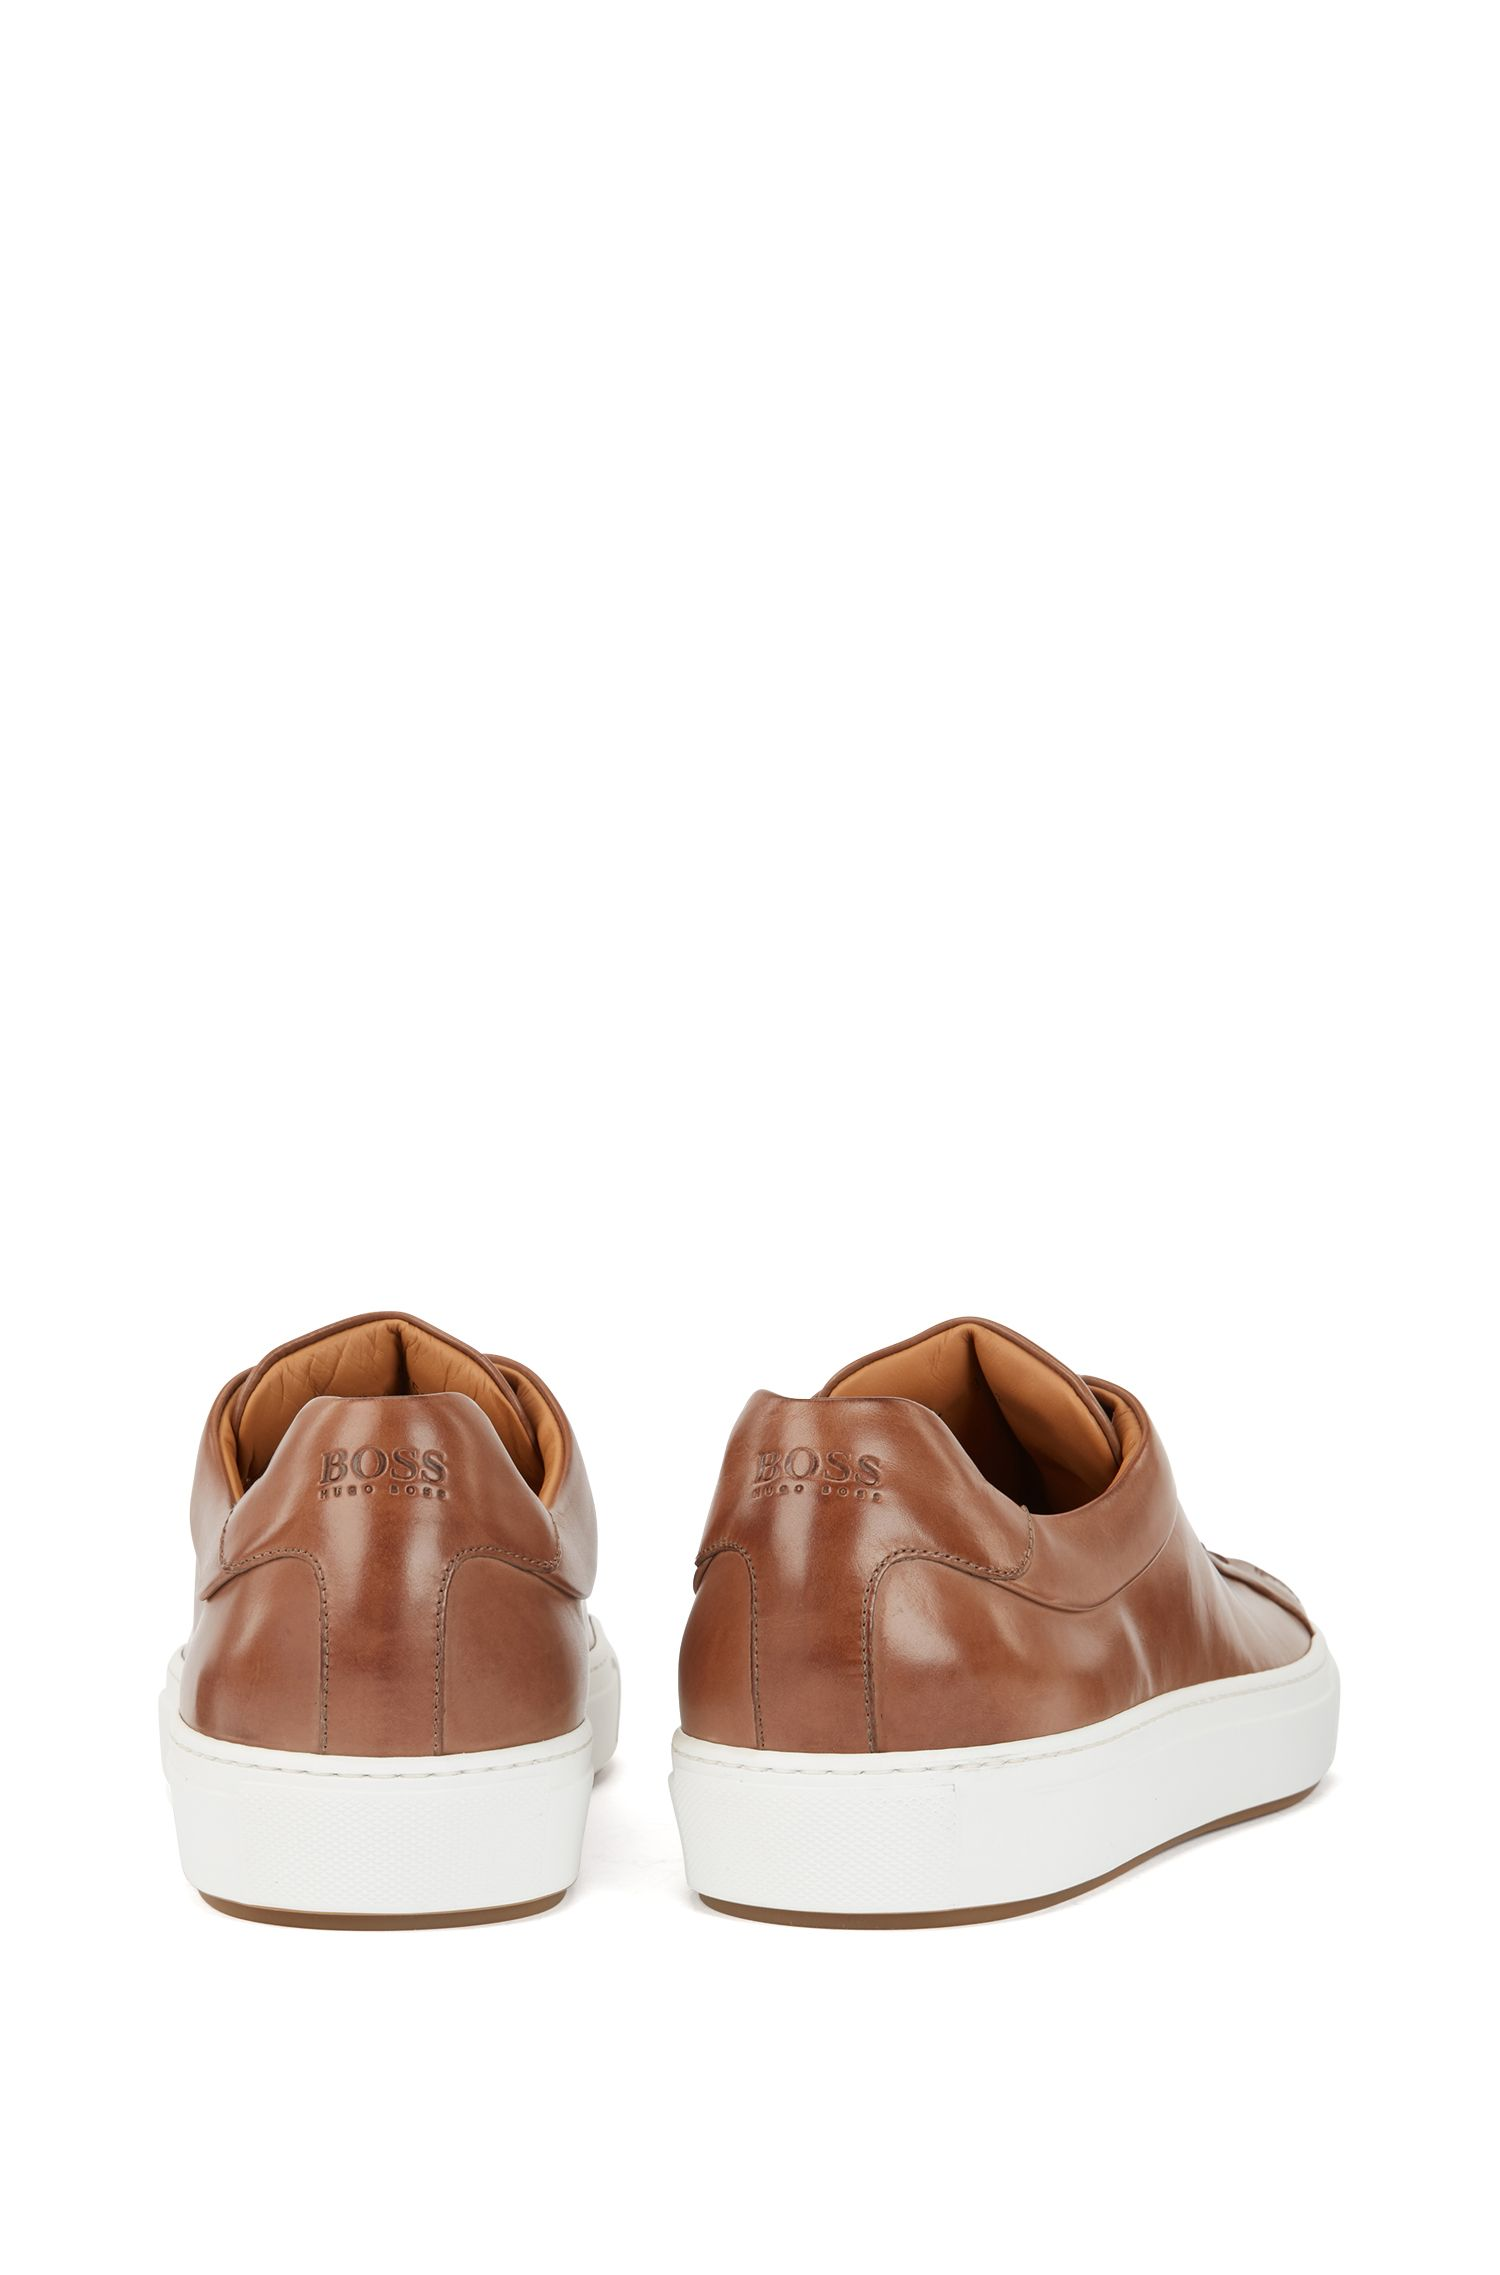 Tennis-style trainers in burnished leather, Khaki